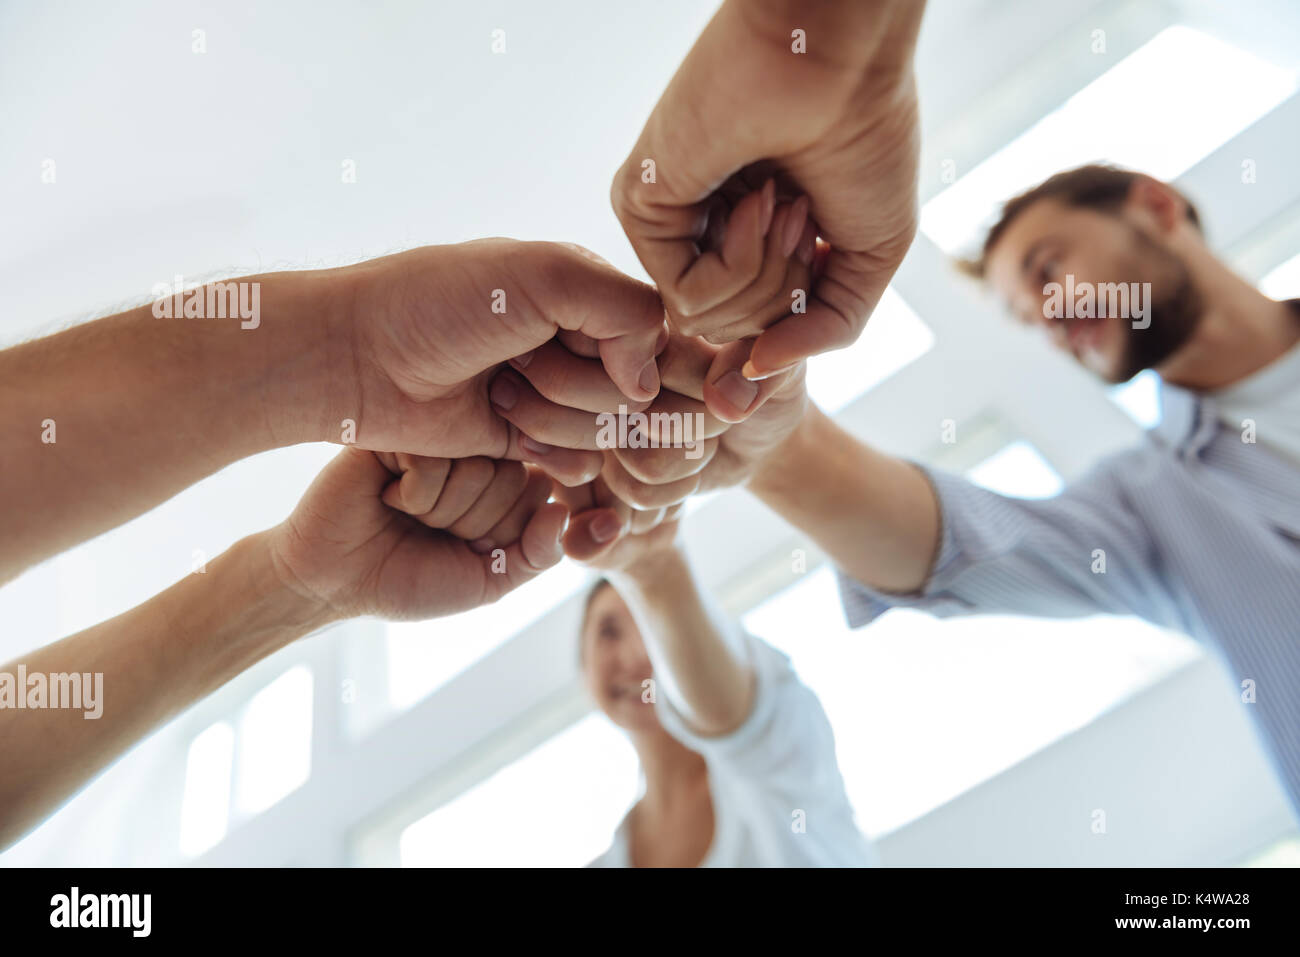 Close up of fists being held together - Stock Image